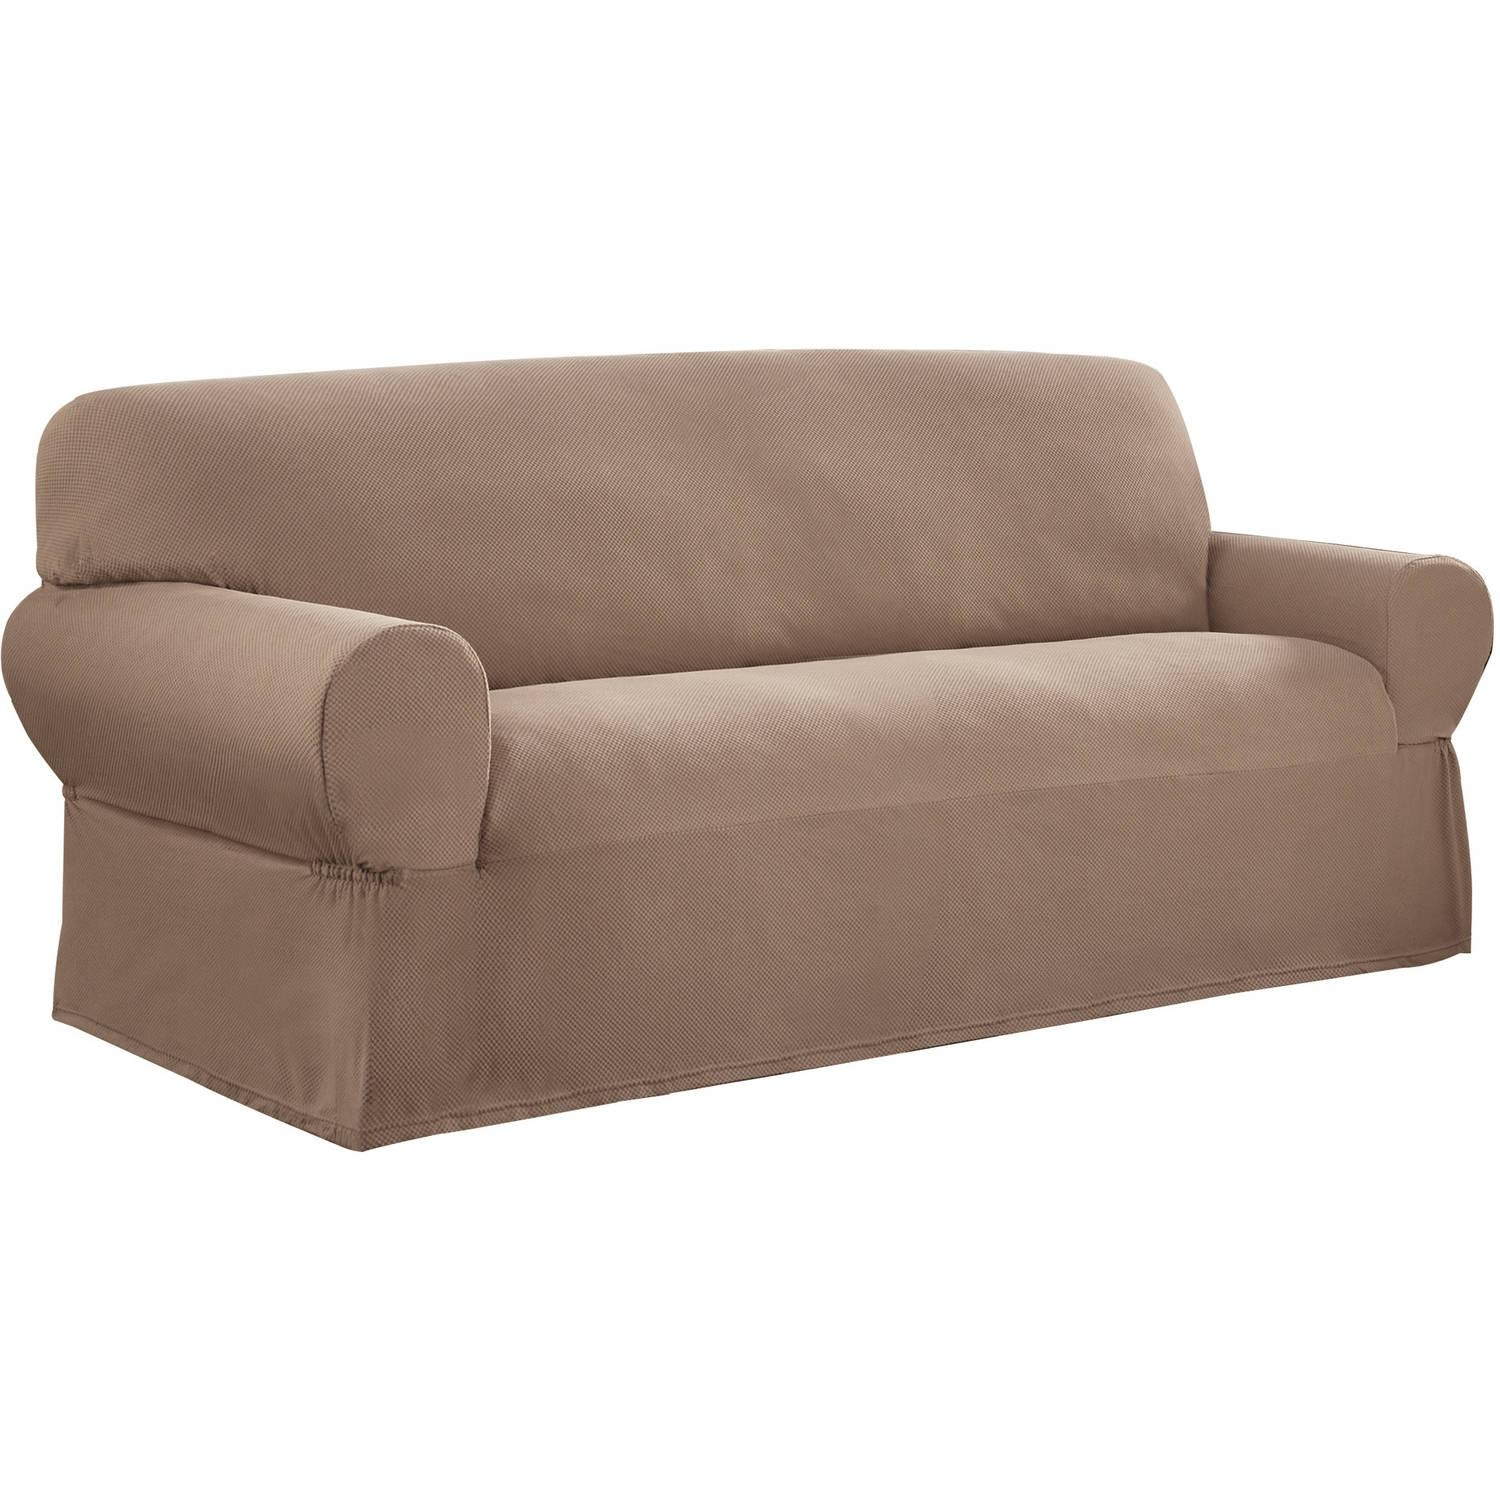 Slipcovers – Walmart Intended For Sleeper Sofa Slipcovers (Image 19 of 20)